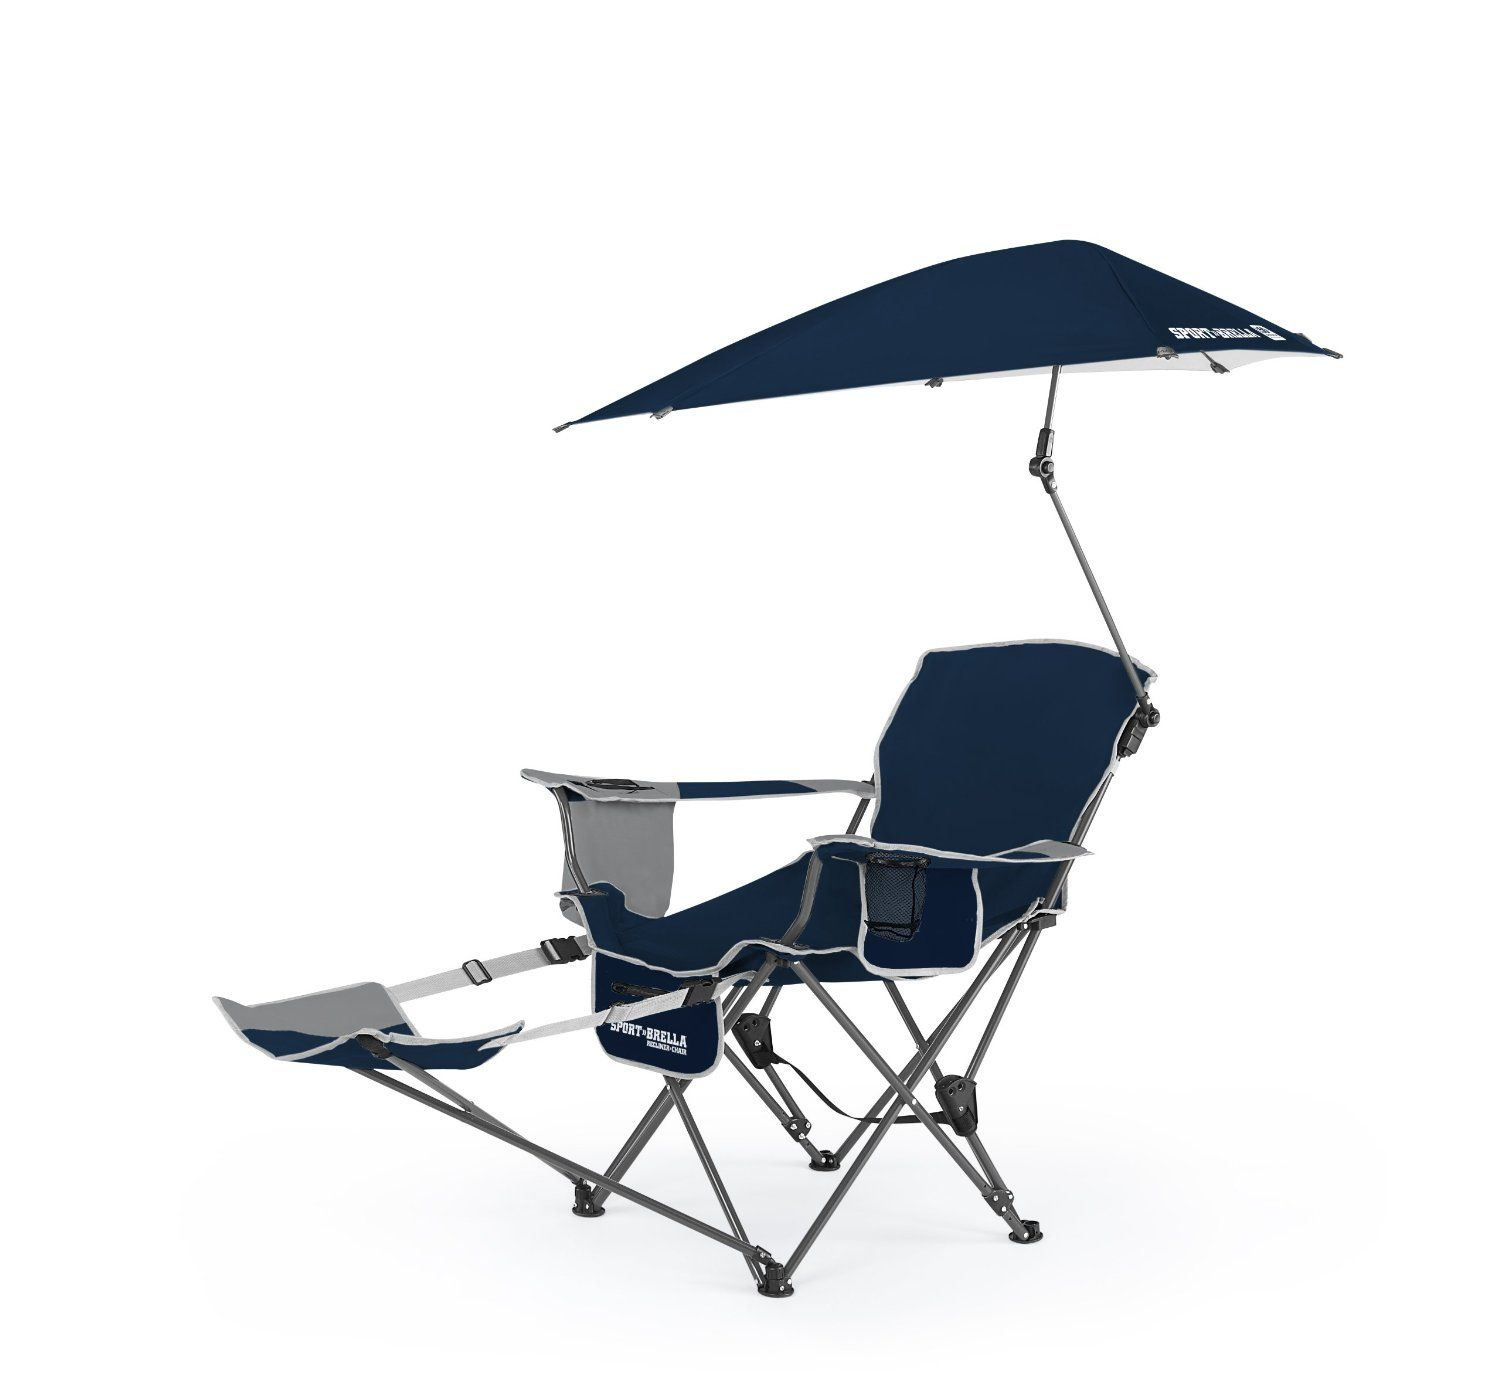 Awesome Best Choice Products Picnic Double Folding Chair W Umbrella Machost Co Dining Chair Design Ideas Machostcouk